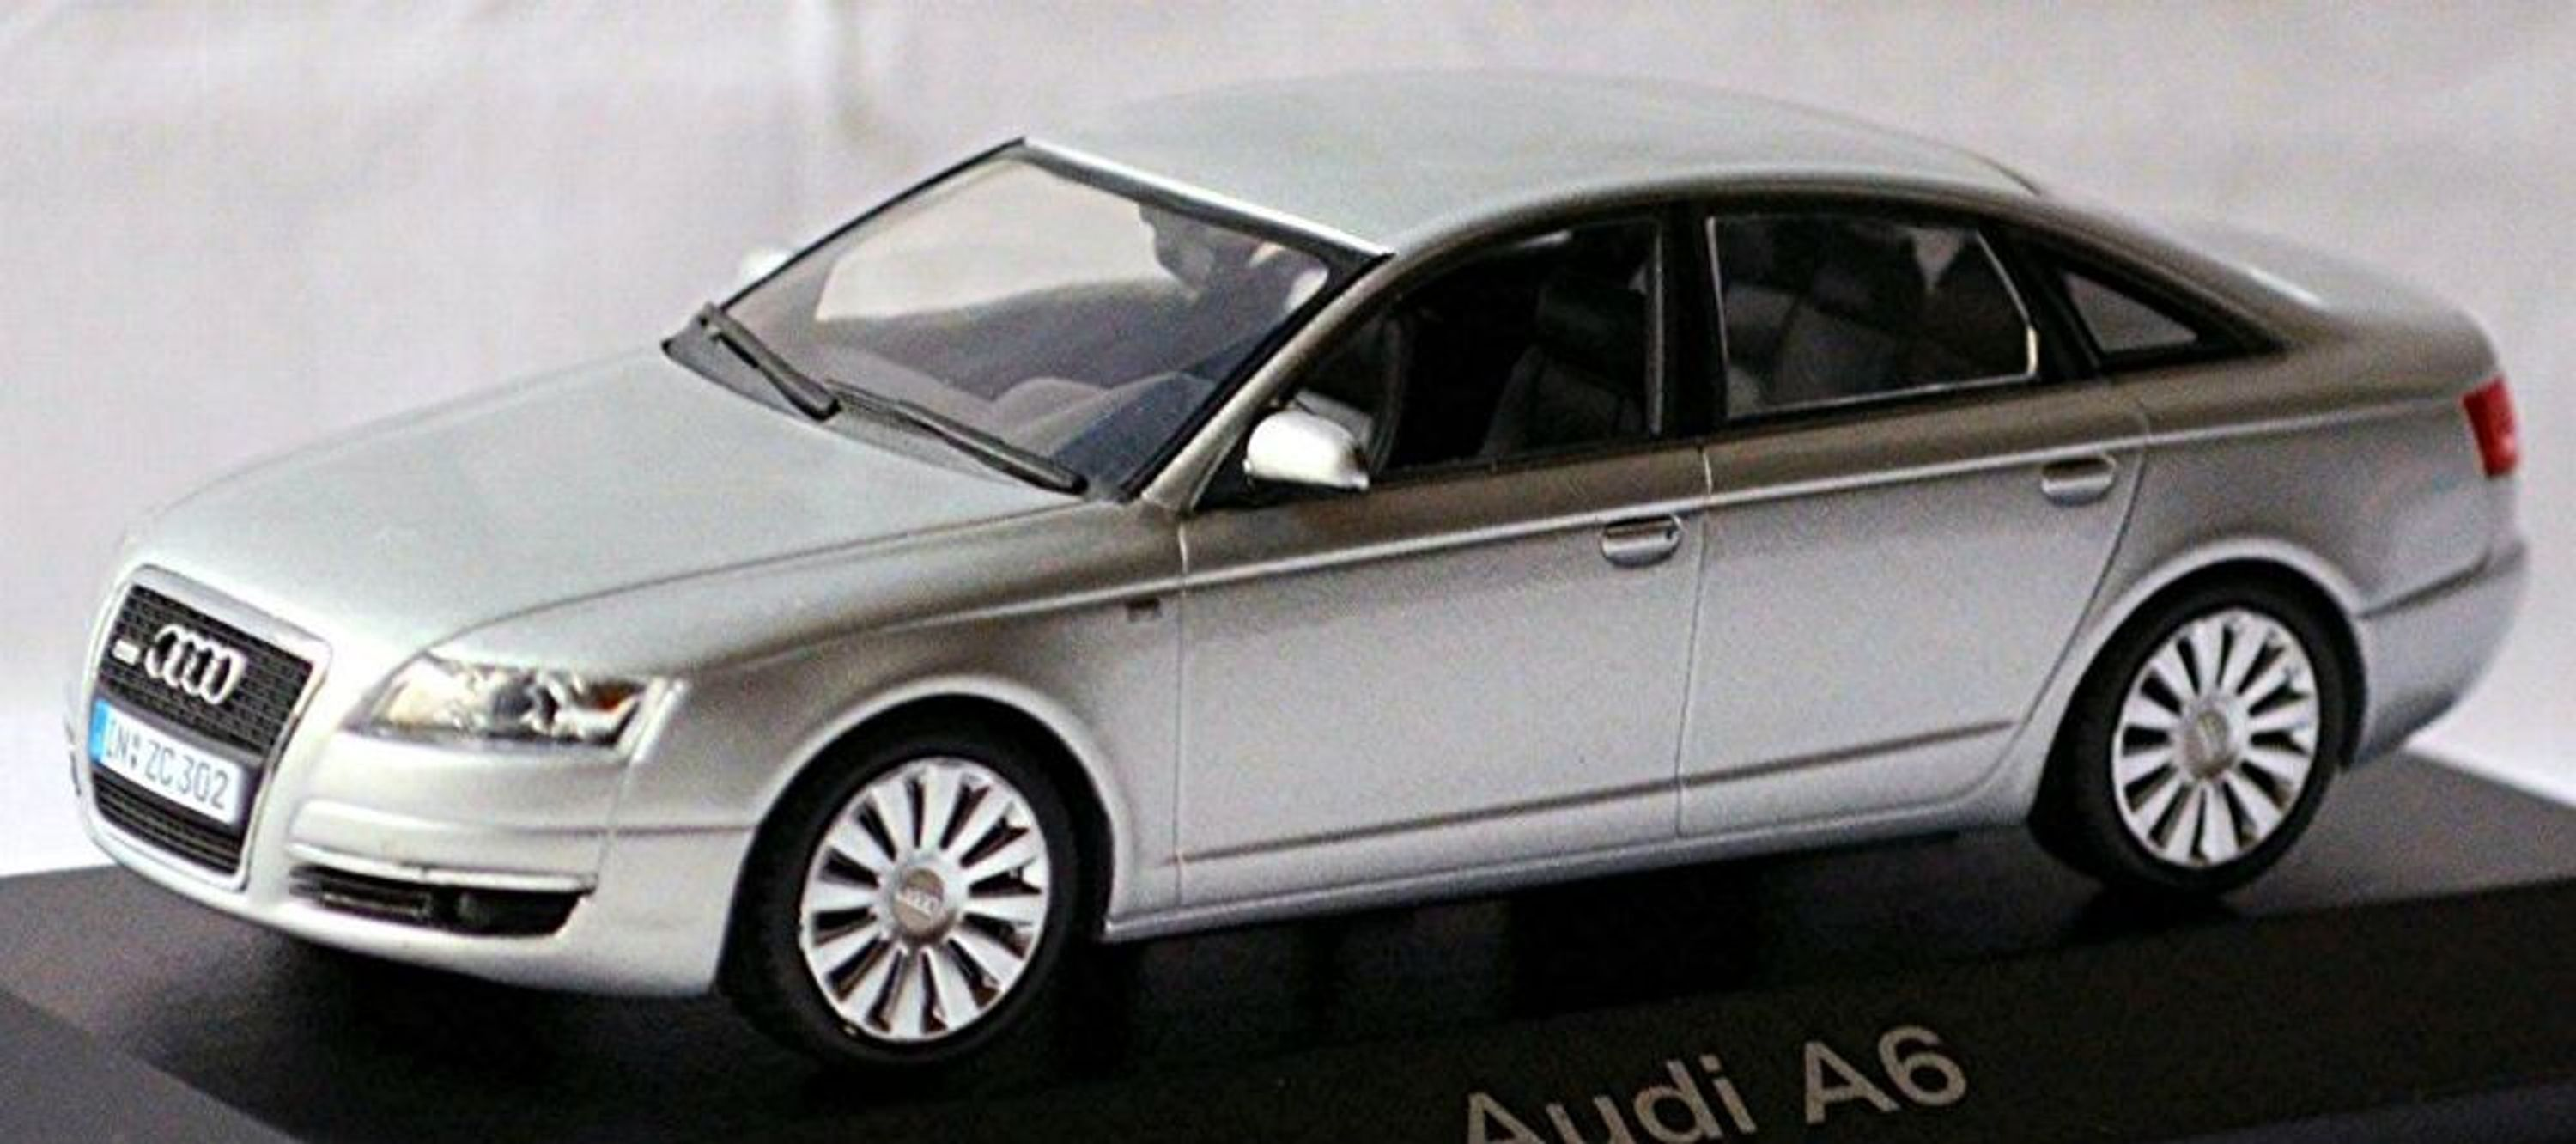 audi a6 limousine c6 typ 4f 2004 08 lichtsilber silver. Black Bedroom Furniture Sets. Home Design Ideas